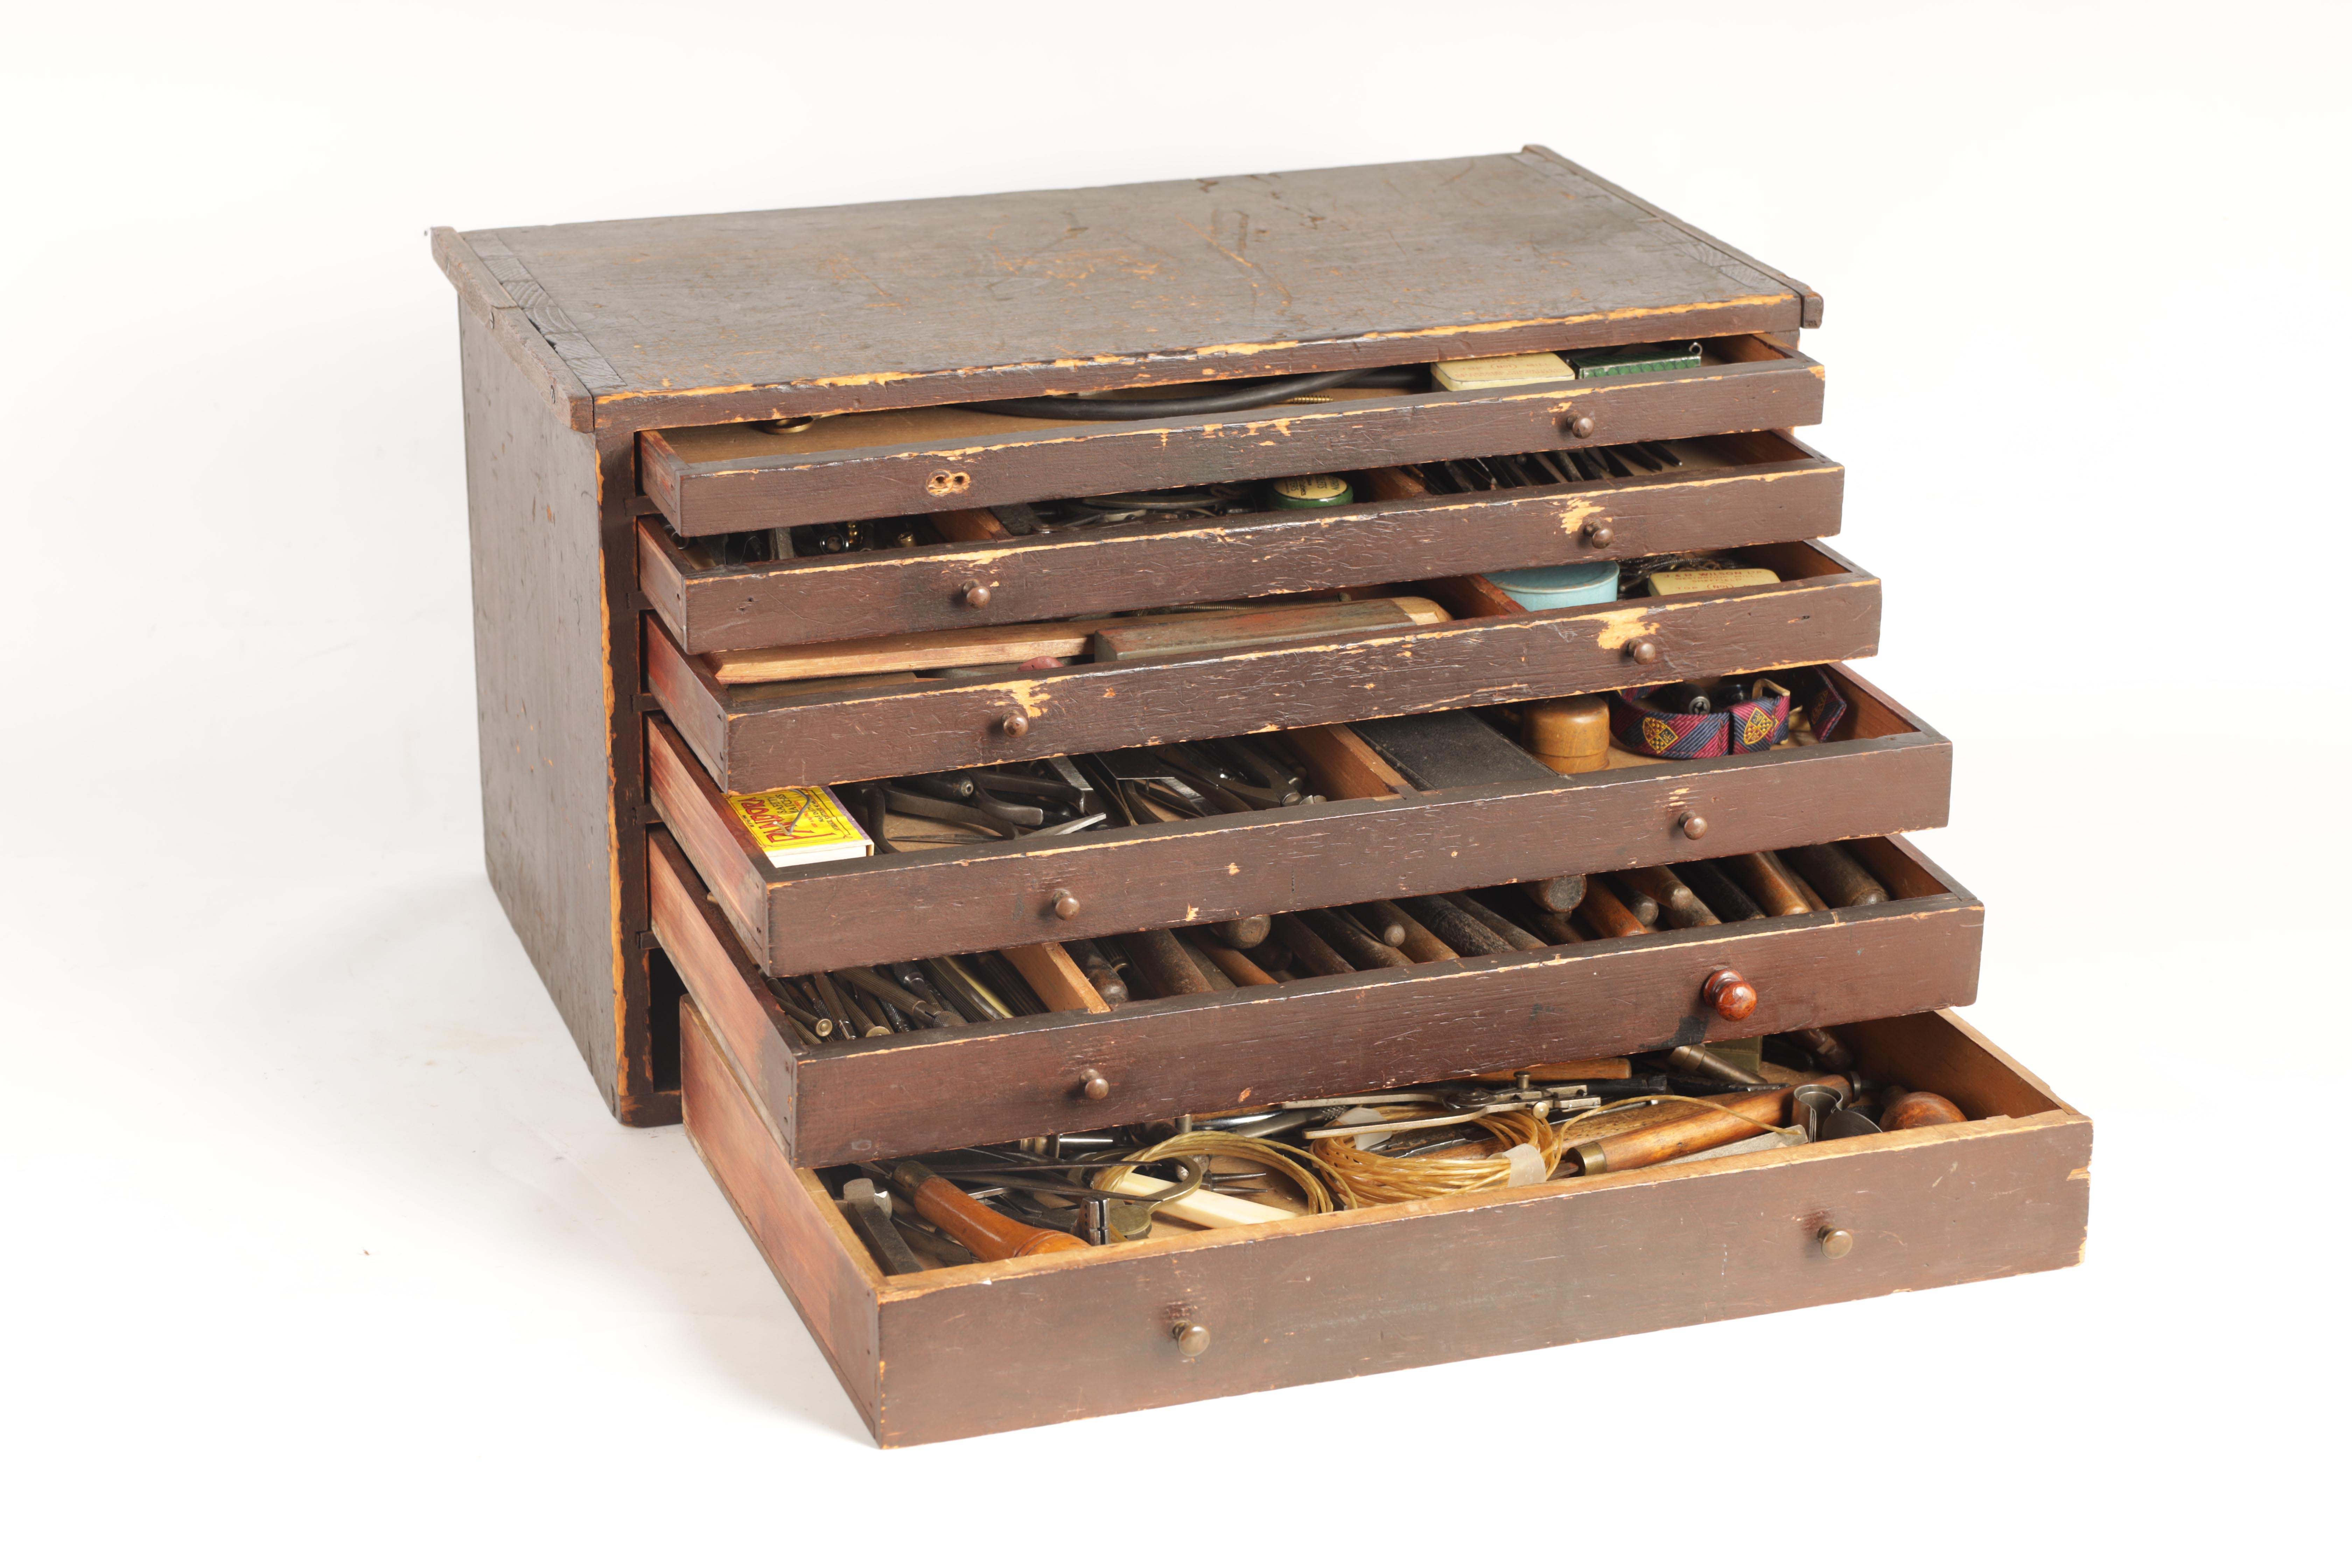 A LARGE COLLECTION OF JEWELERS AND WATCHMAKERS TOOLS contained in a set of pine drawers - Image 12 of 12